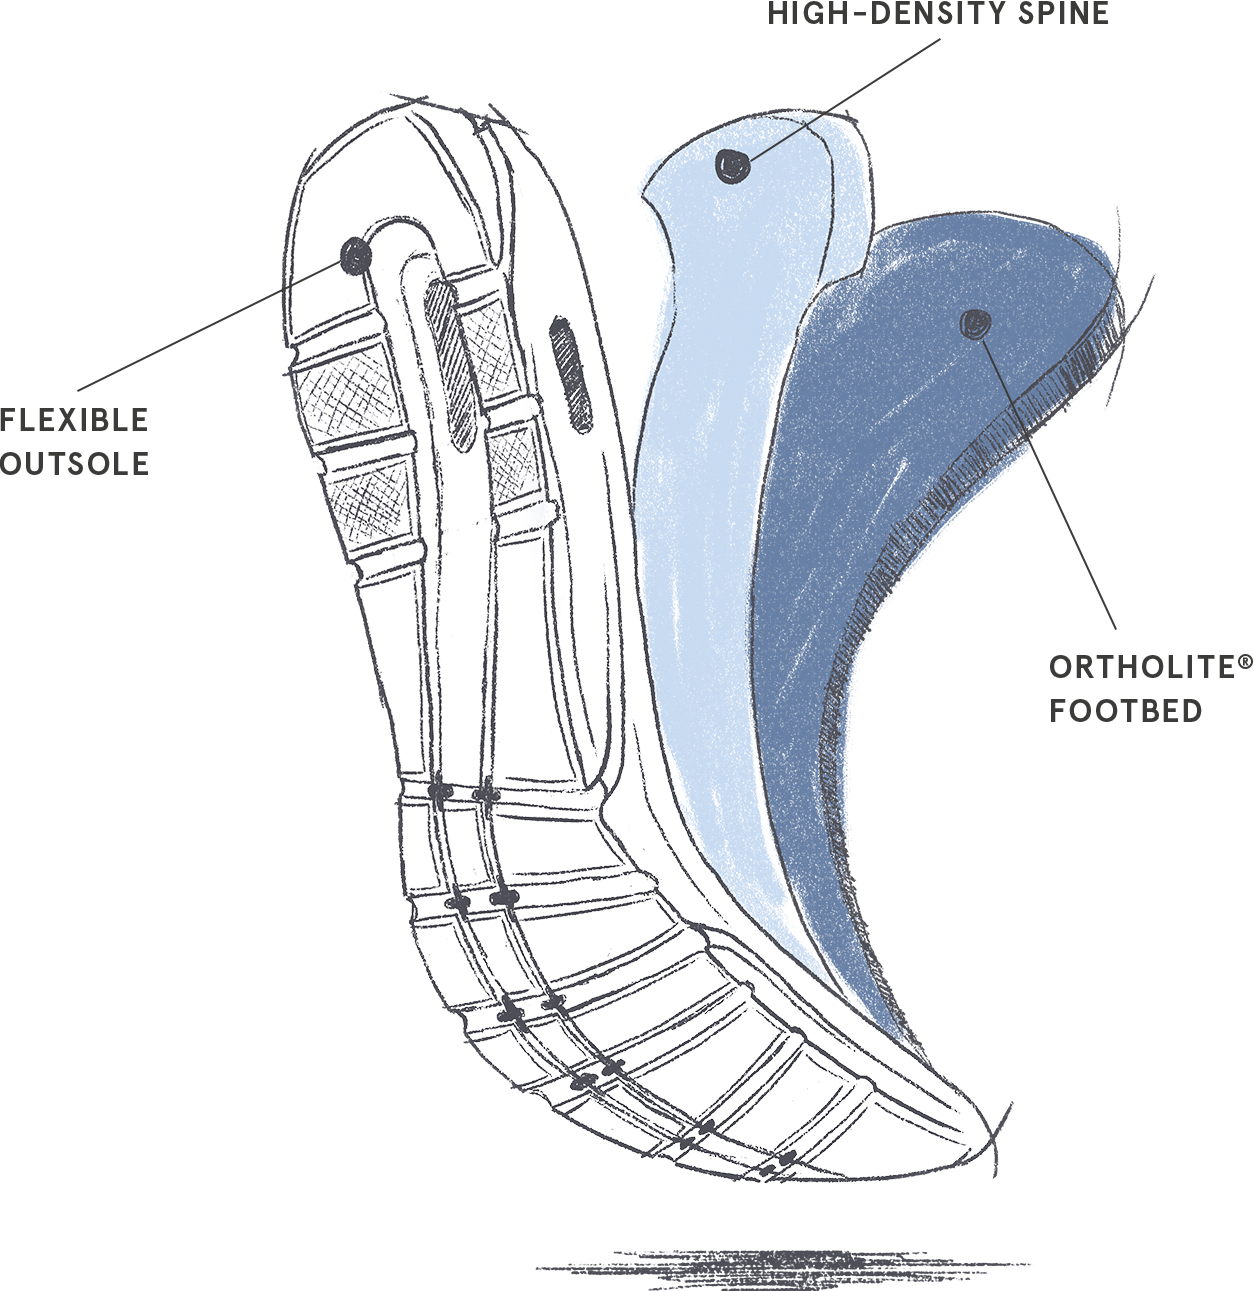 Smart drawing marine. Footwear technology for more